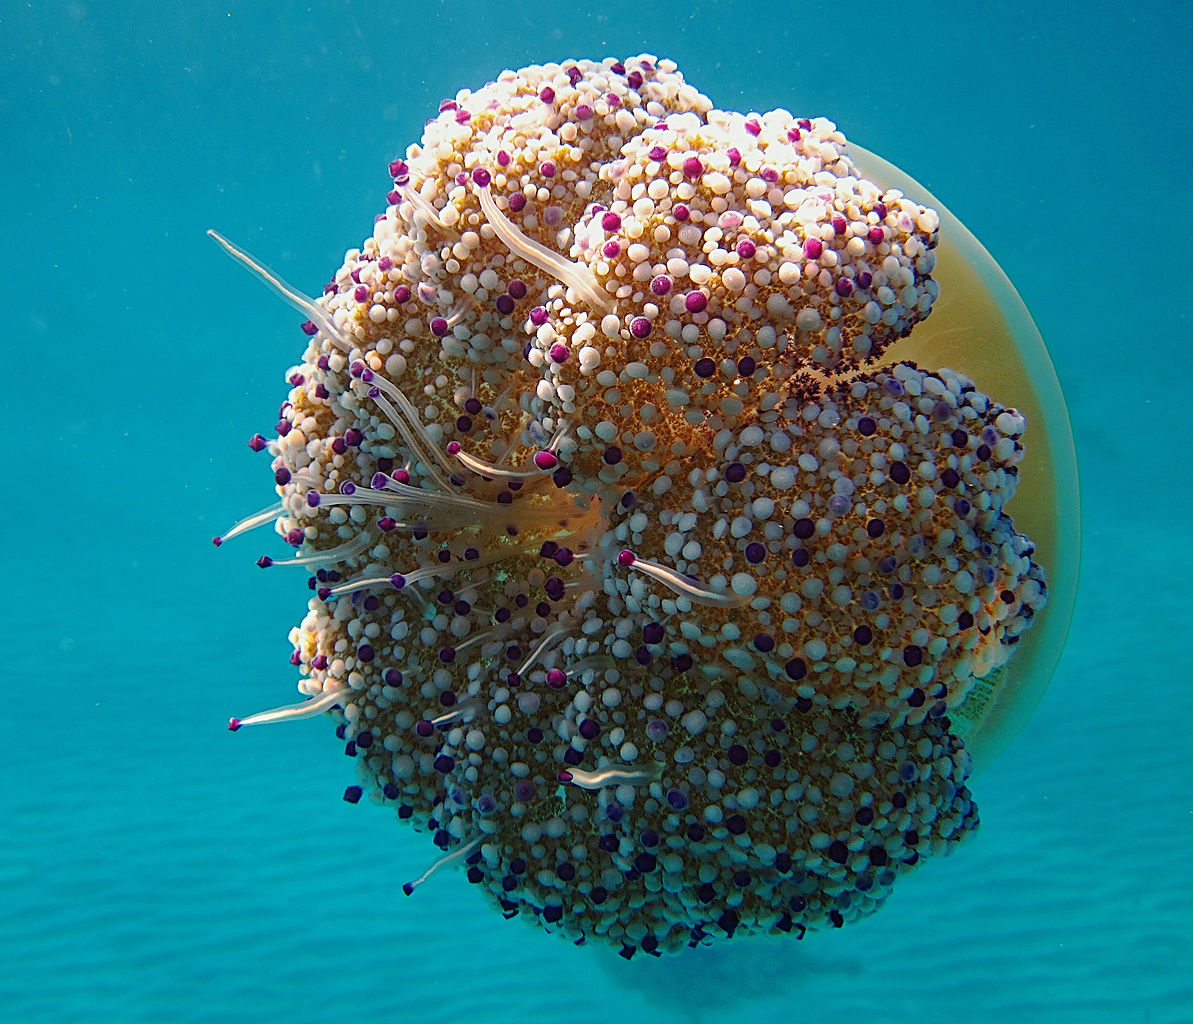 Fried egg jellyfish (Mediterranean Jellyfish)